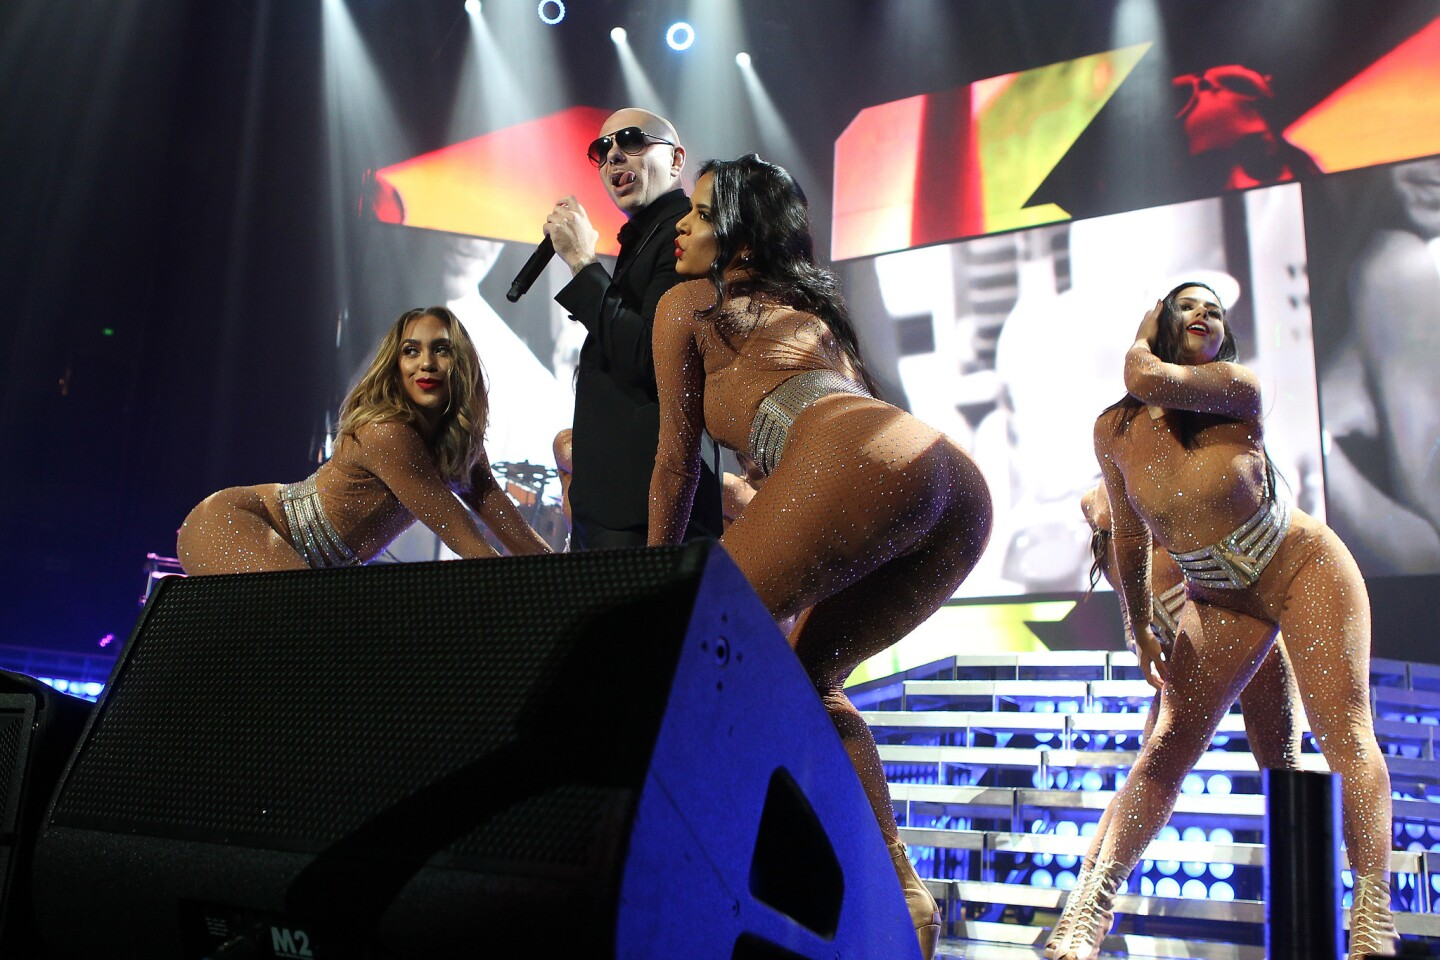 PitBull performs onstage during The Bad Man Tour at The Forum on July 15, 2016 in Anaheim, CA. (Photo by © Art. Garcia/DDPixels.com)